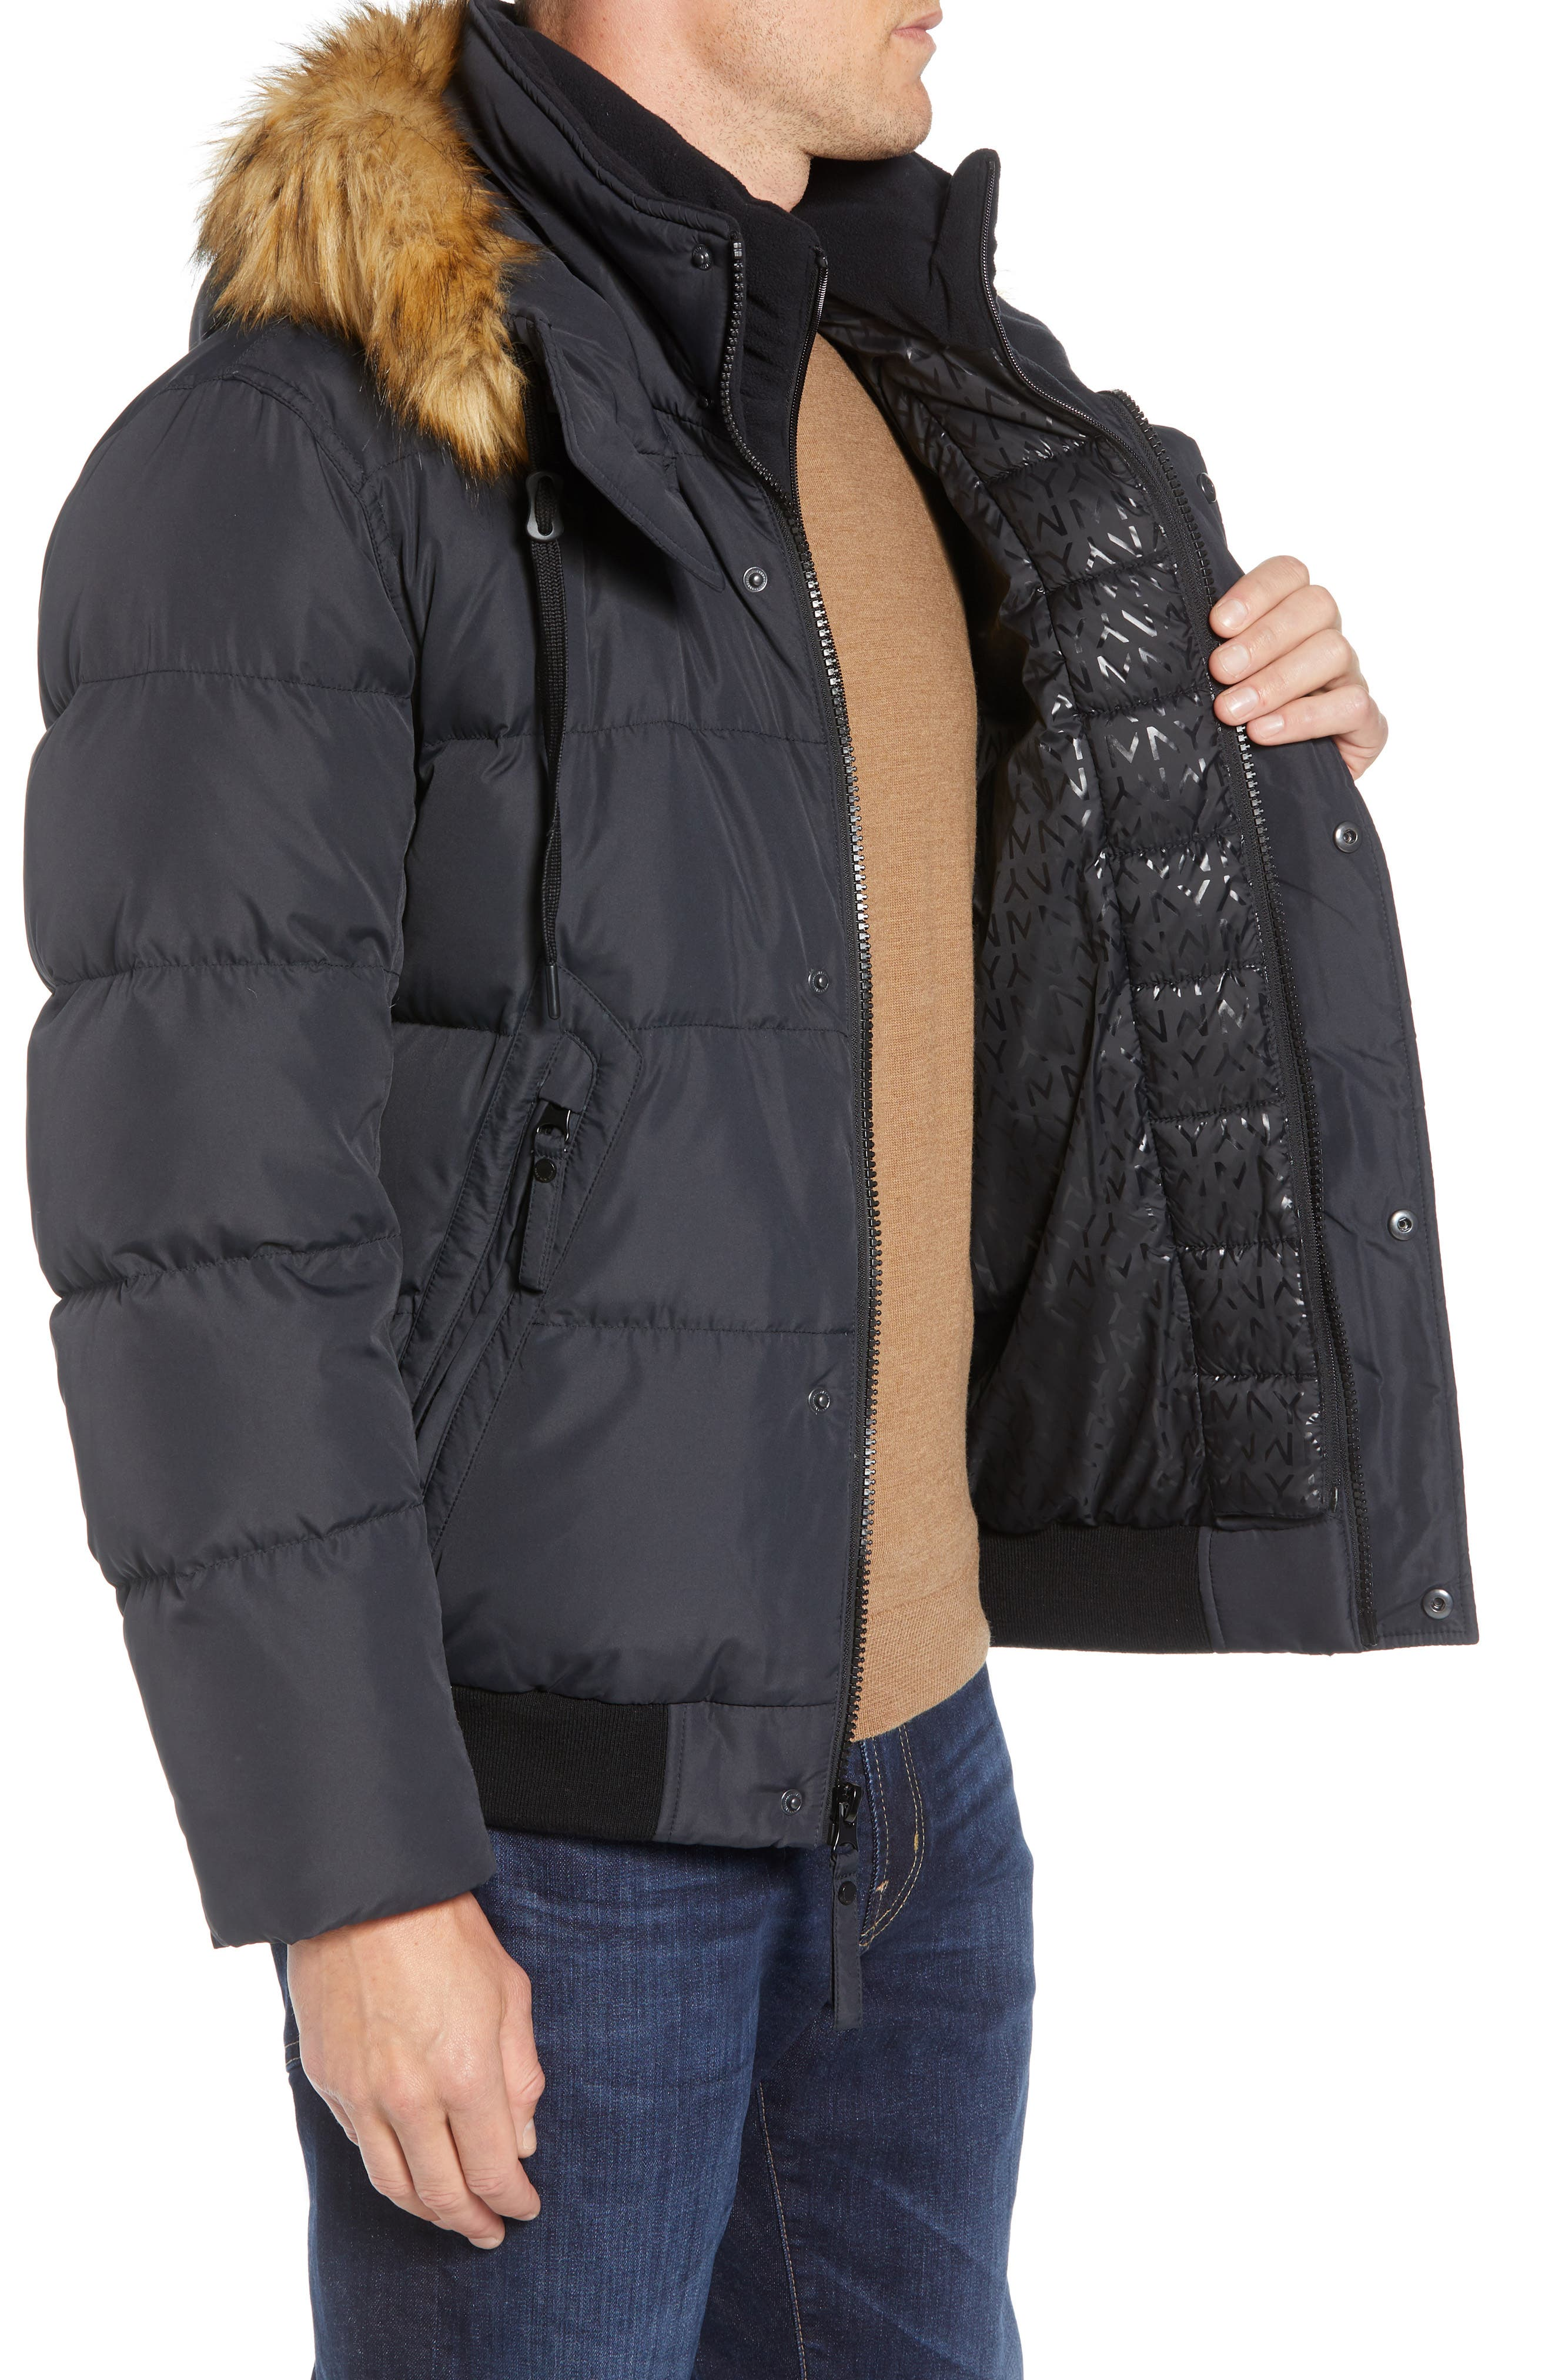 Clermont Insulated Bomber Jacket,                             Alternate thumbnail 4, color,                             BLACK